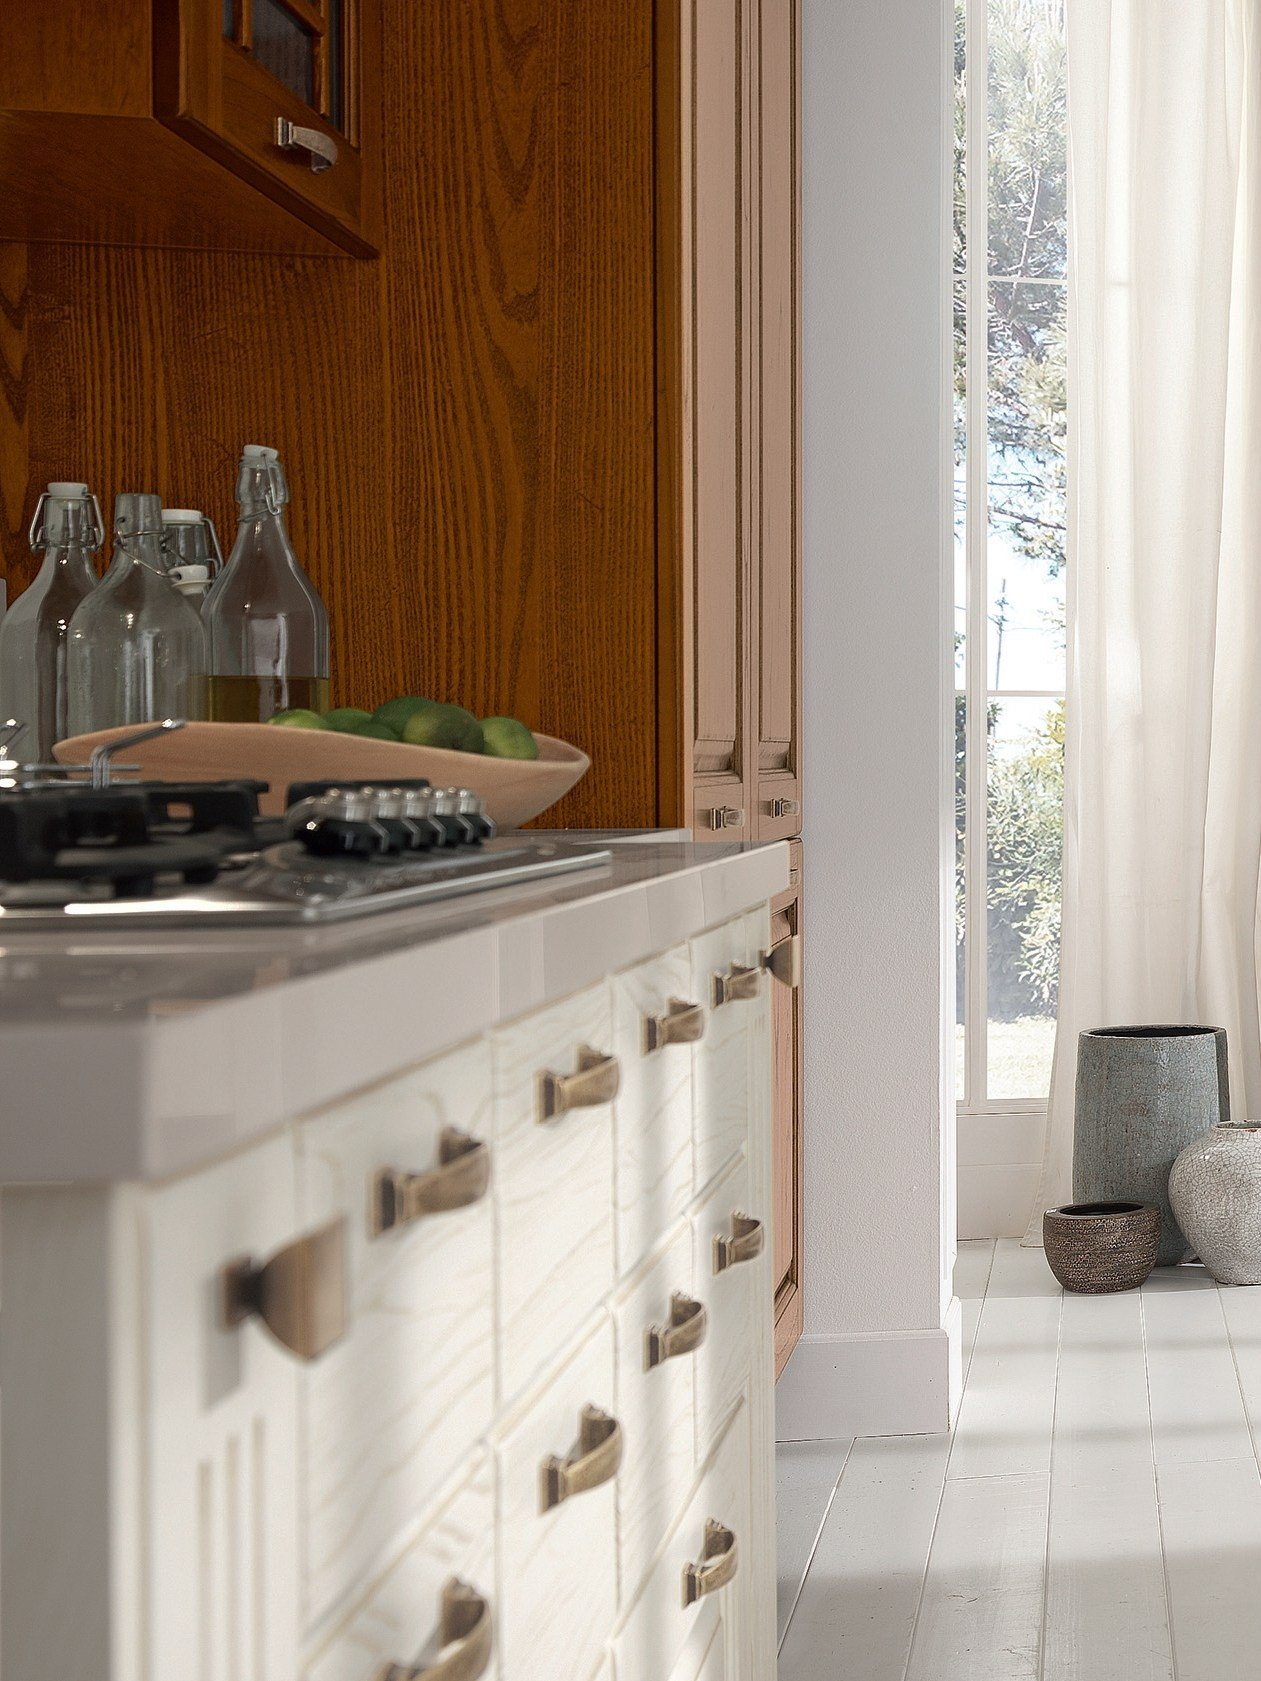 laura | wooden kitchen by cucine lube - Cucina Laura Lube